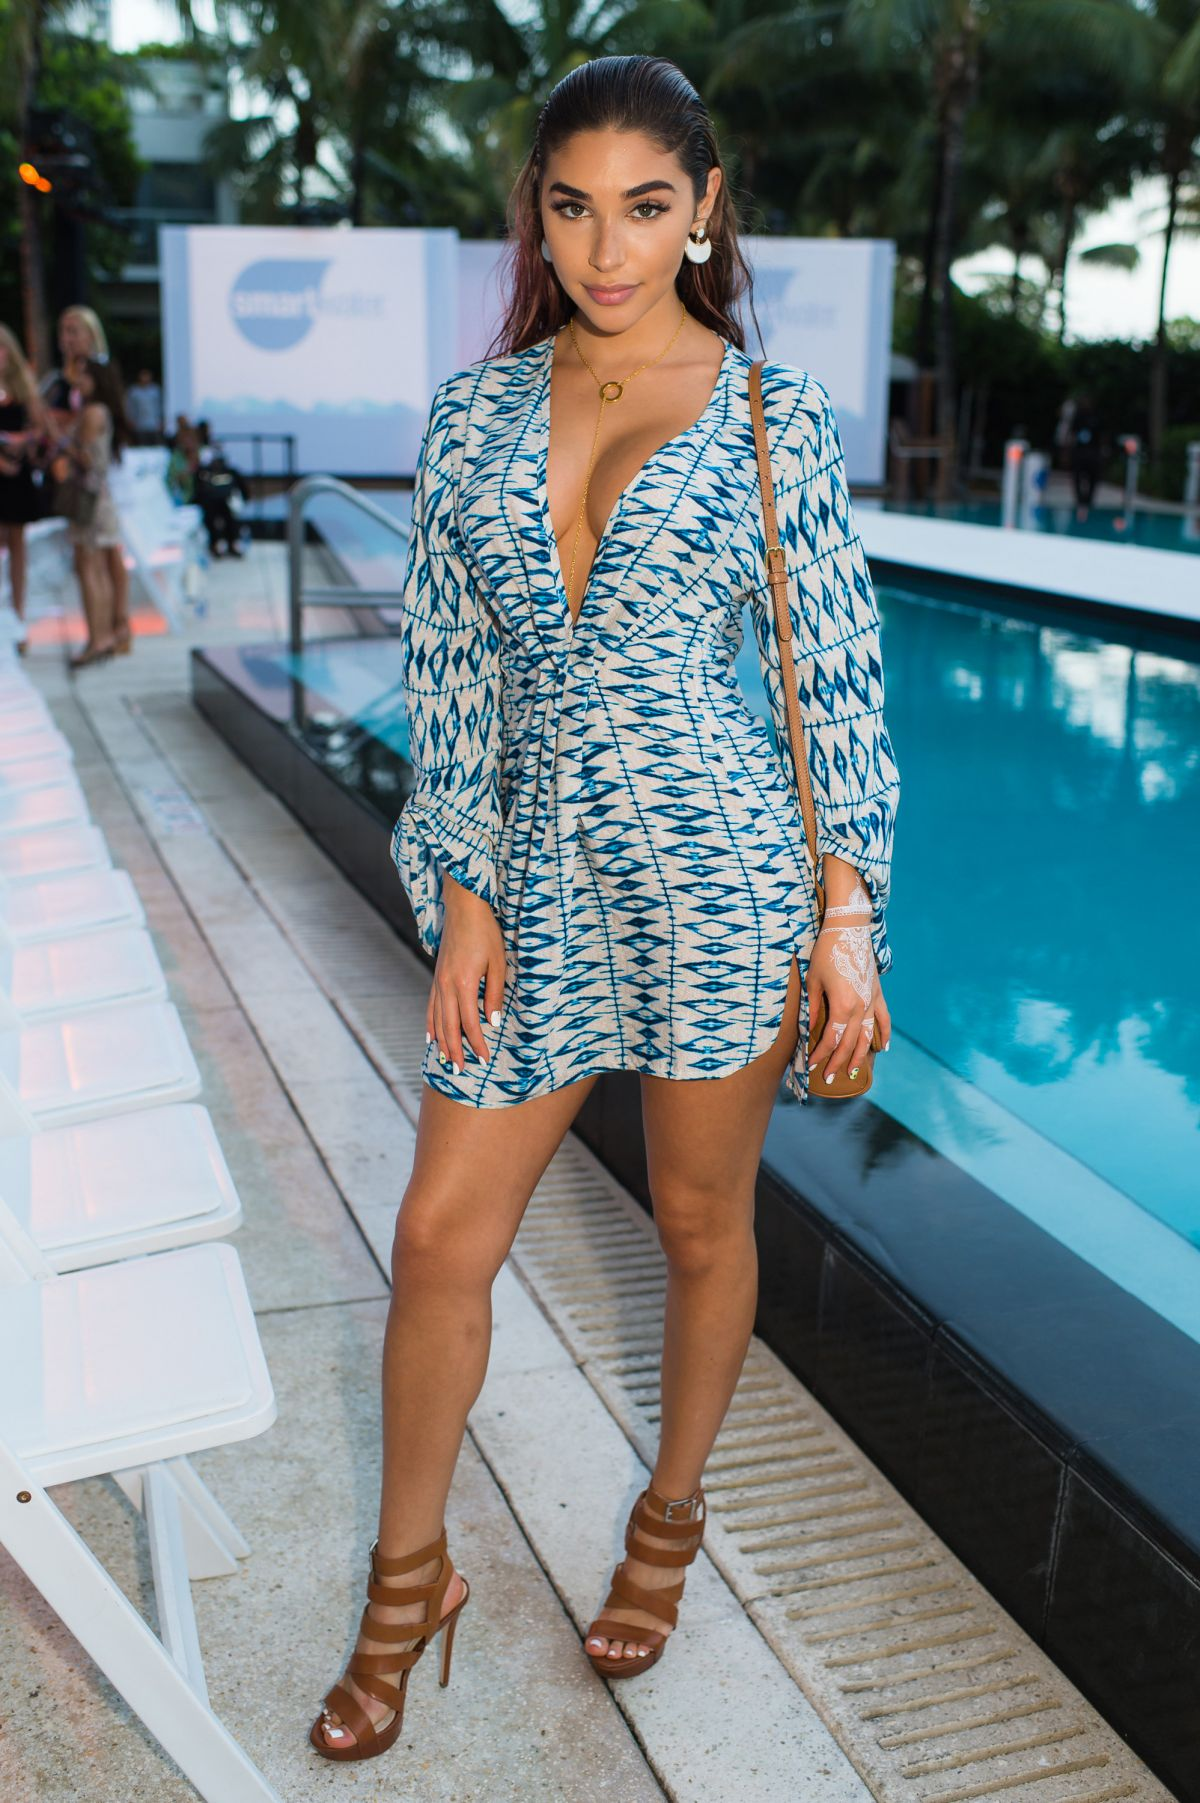 Chantel Jeffries At Cfda Incubator Show And Cocktail Party In Miami Hawtcelebs